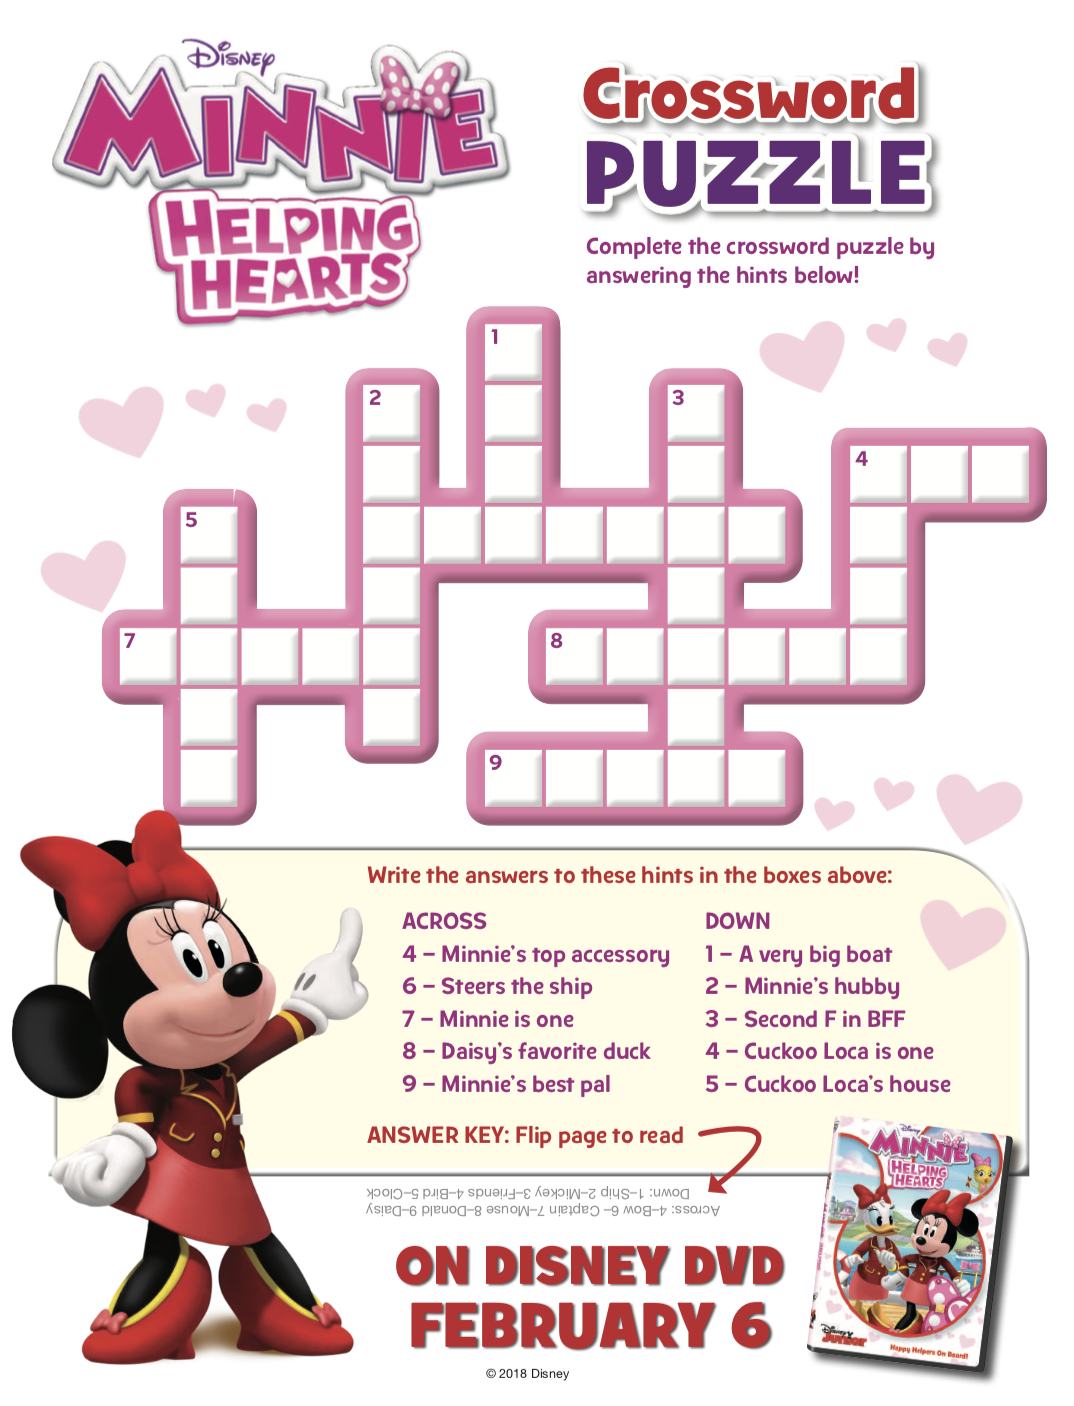 11 Fun Disney Crossword Puzzles | Kittybabylove - Crossword Puzzle Printable Disney